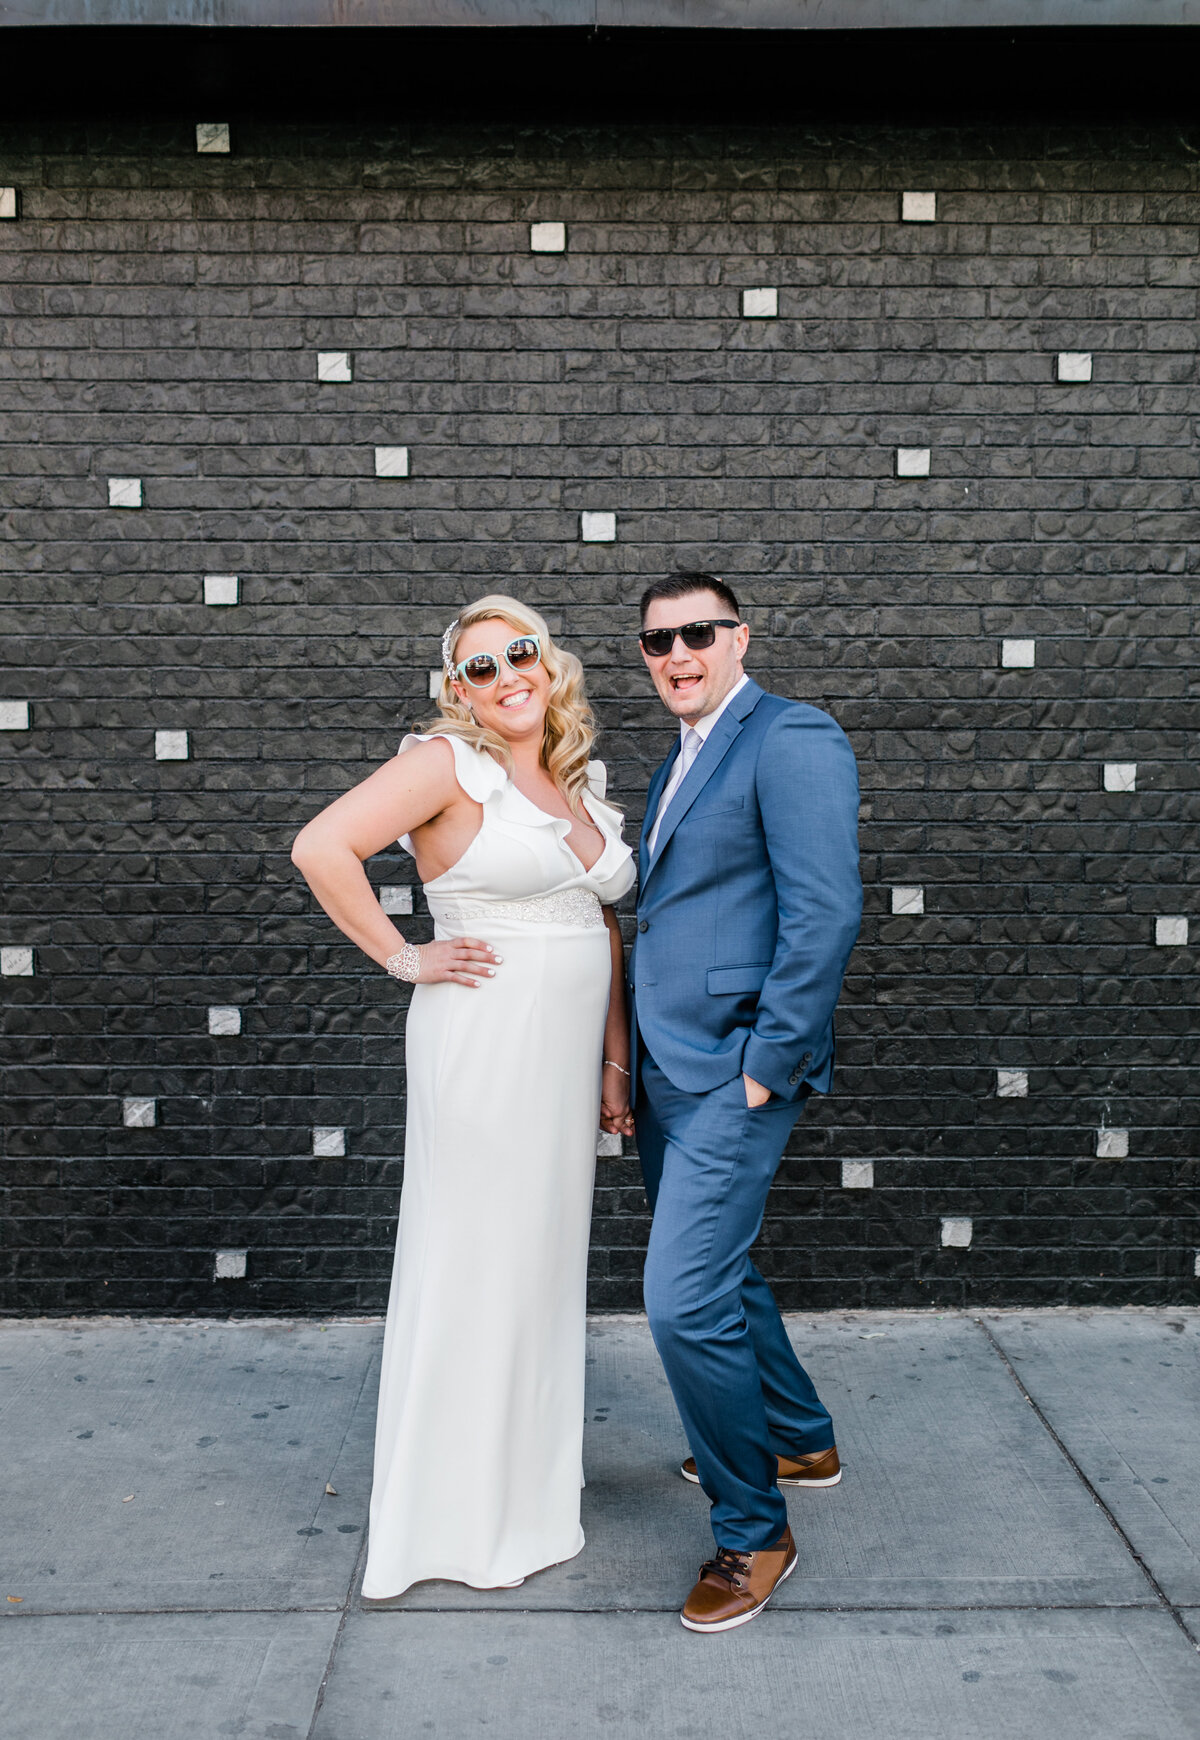 2020.2.15 - Little White Wedding Chapel and Fremont - Brianne & Andy's Elopement - Ivette West Photography-52